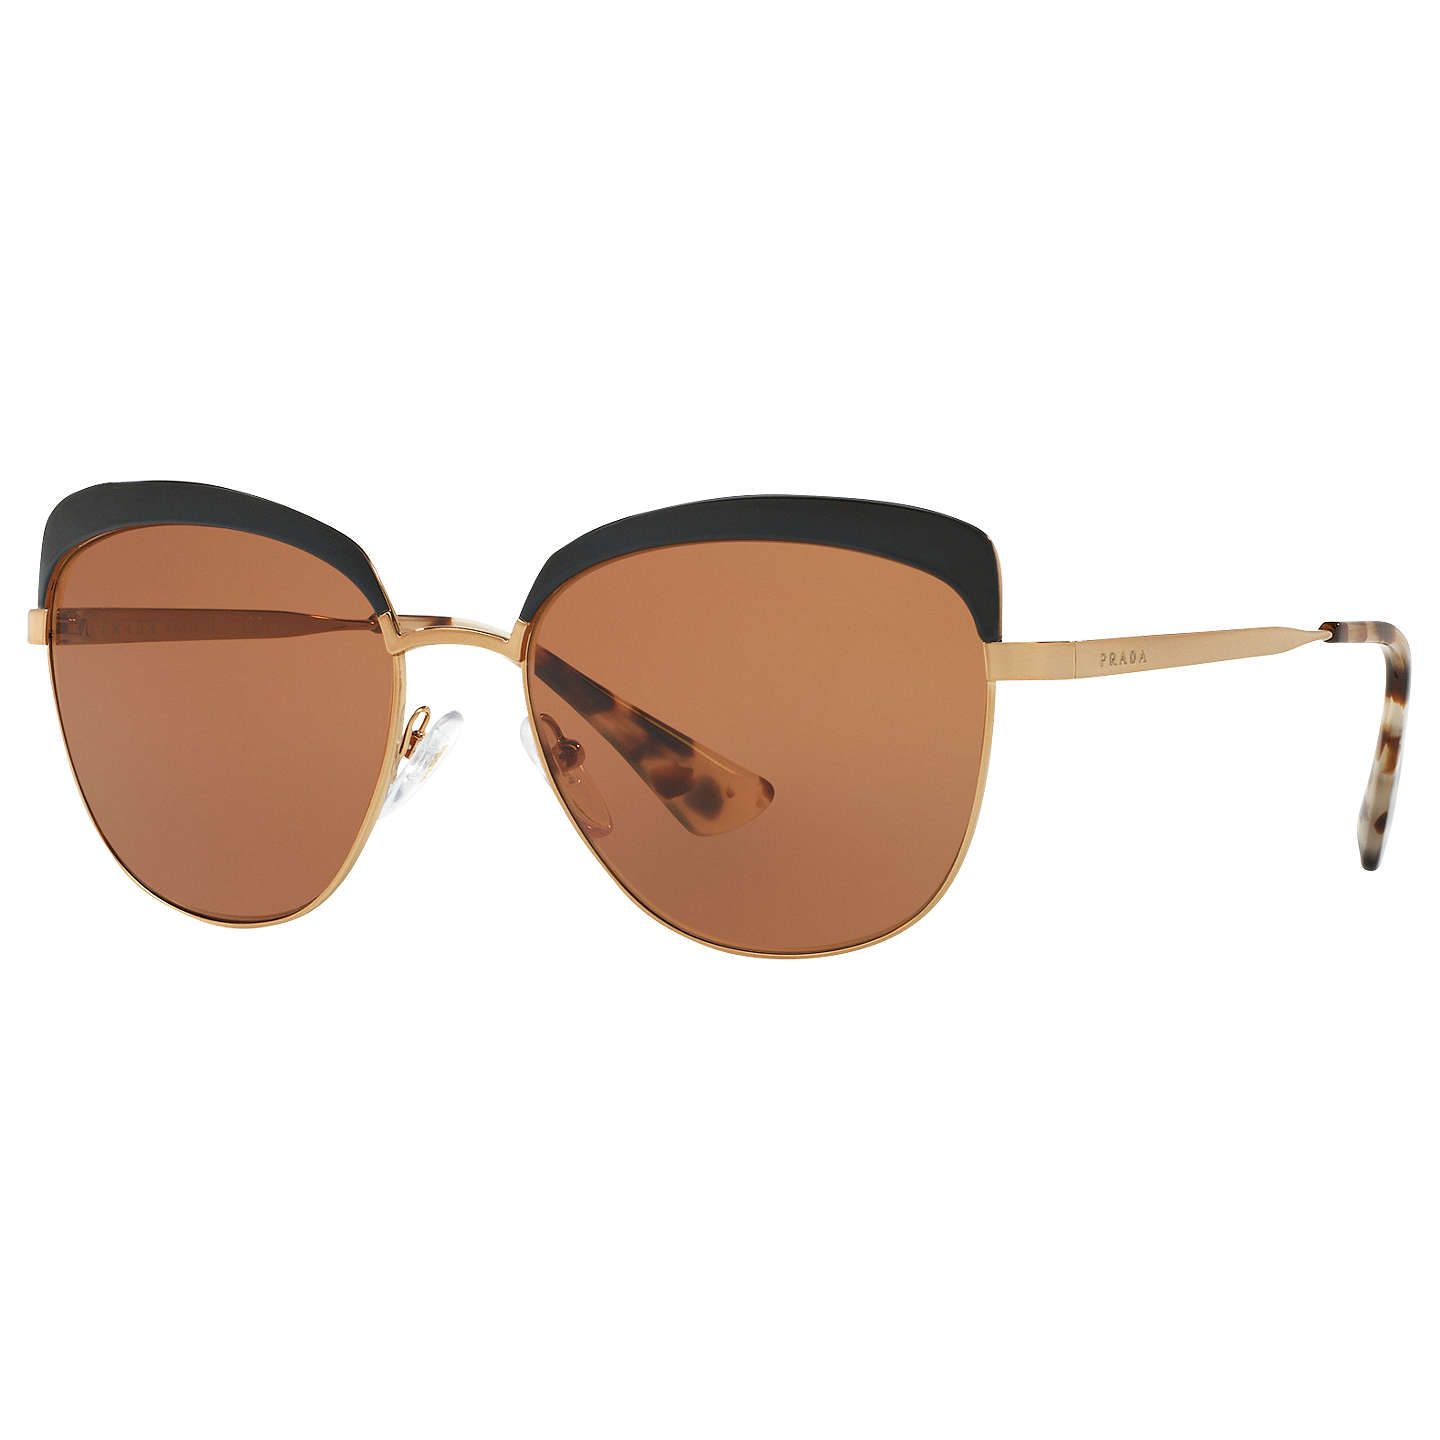 490b21f04ed23 ... coupon code buyprada pr 51ts square sunglasses gold brown online at  johnlewis 09927 9d758